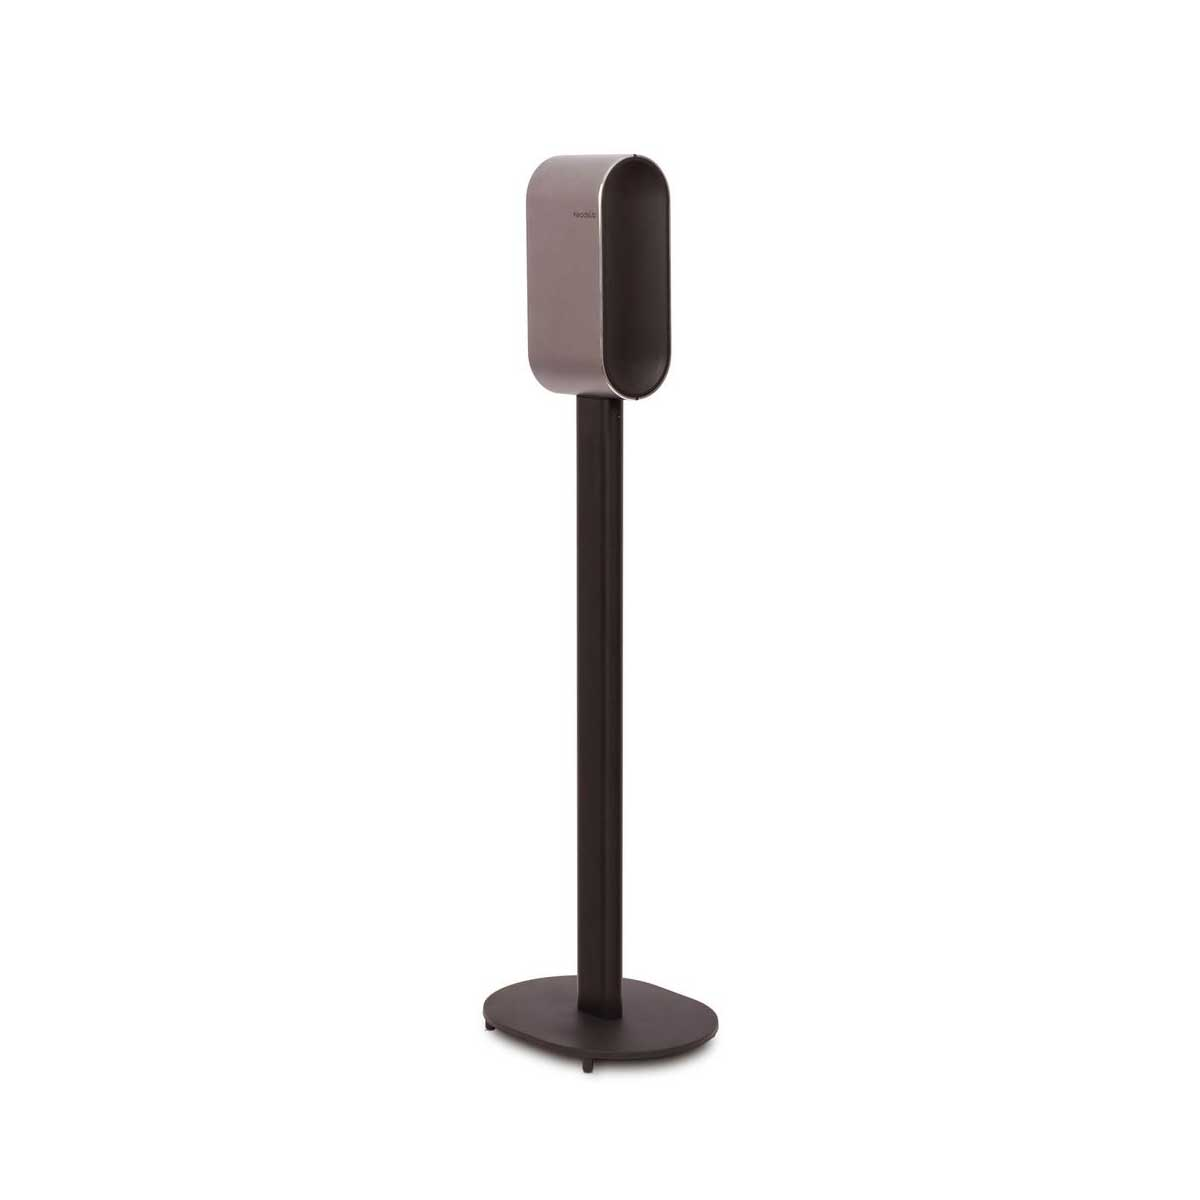 HeadsUp Premium Floor Headphone Stand